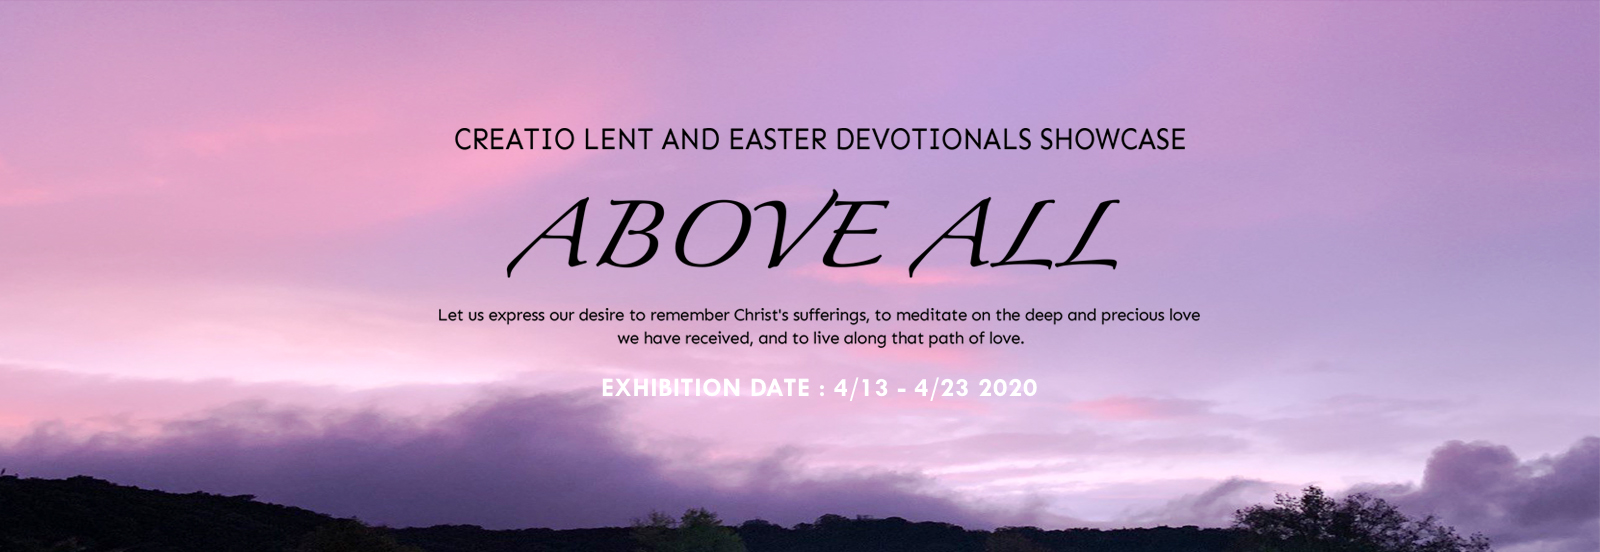 Creatio Lent and Easter Devotionals Showcase